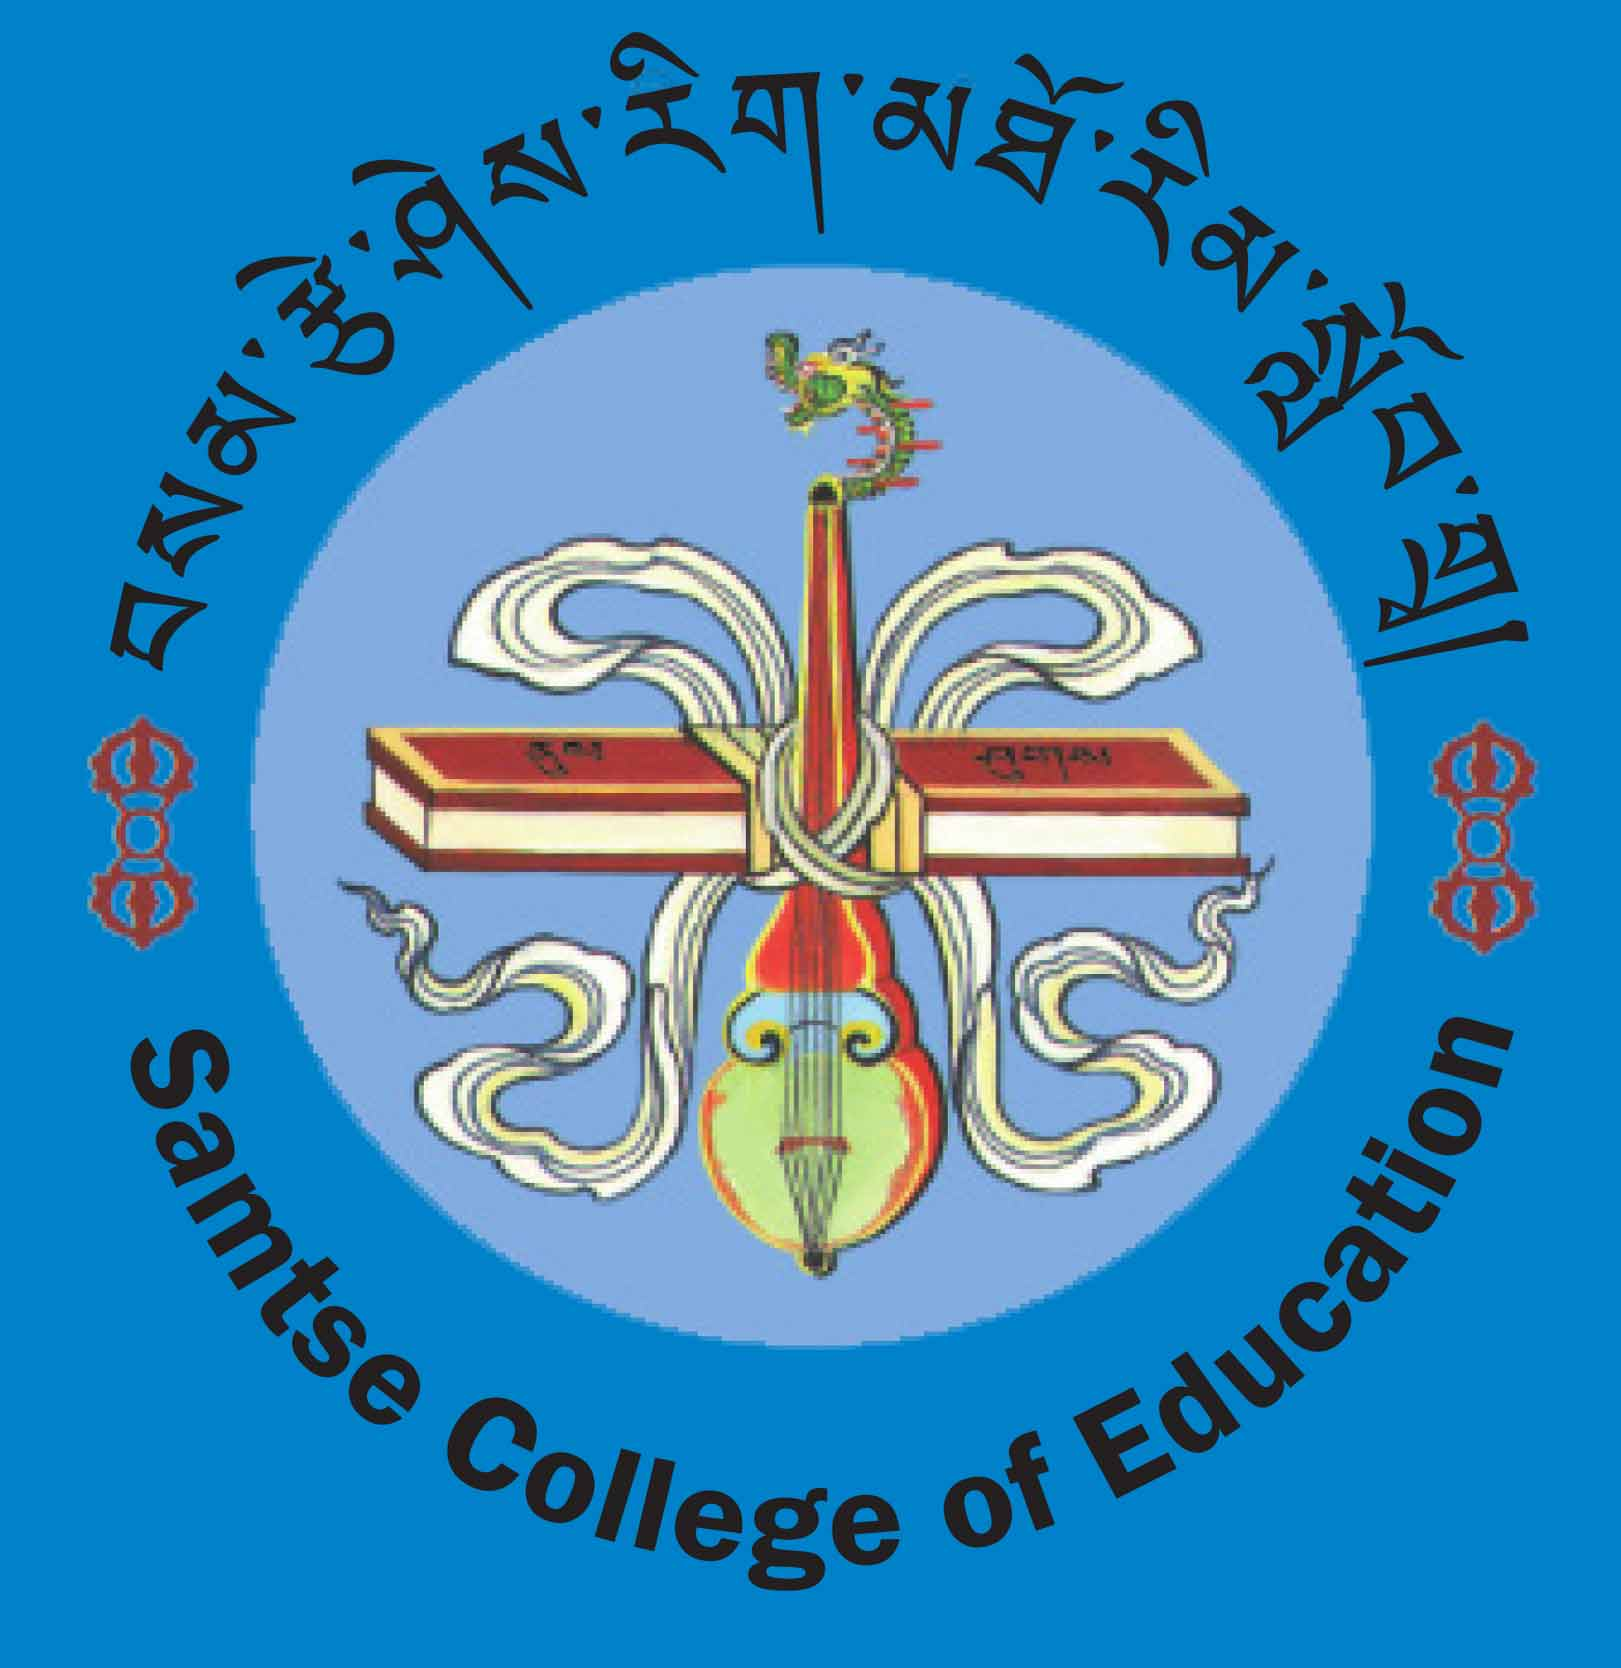 Samtse College of Education